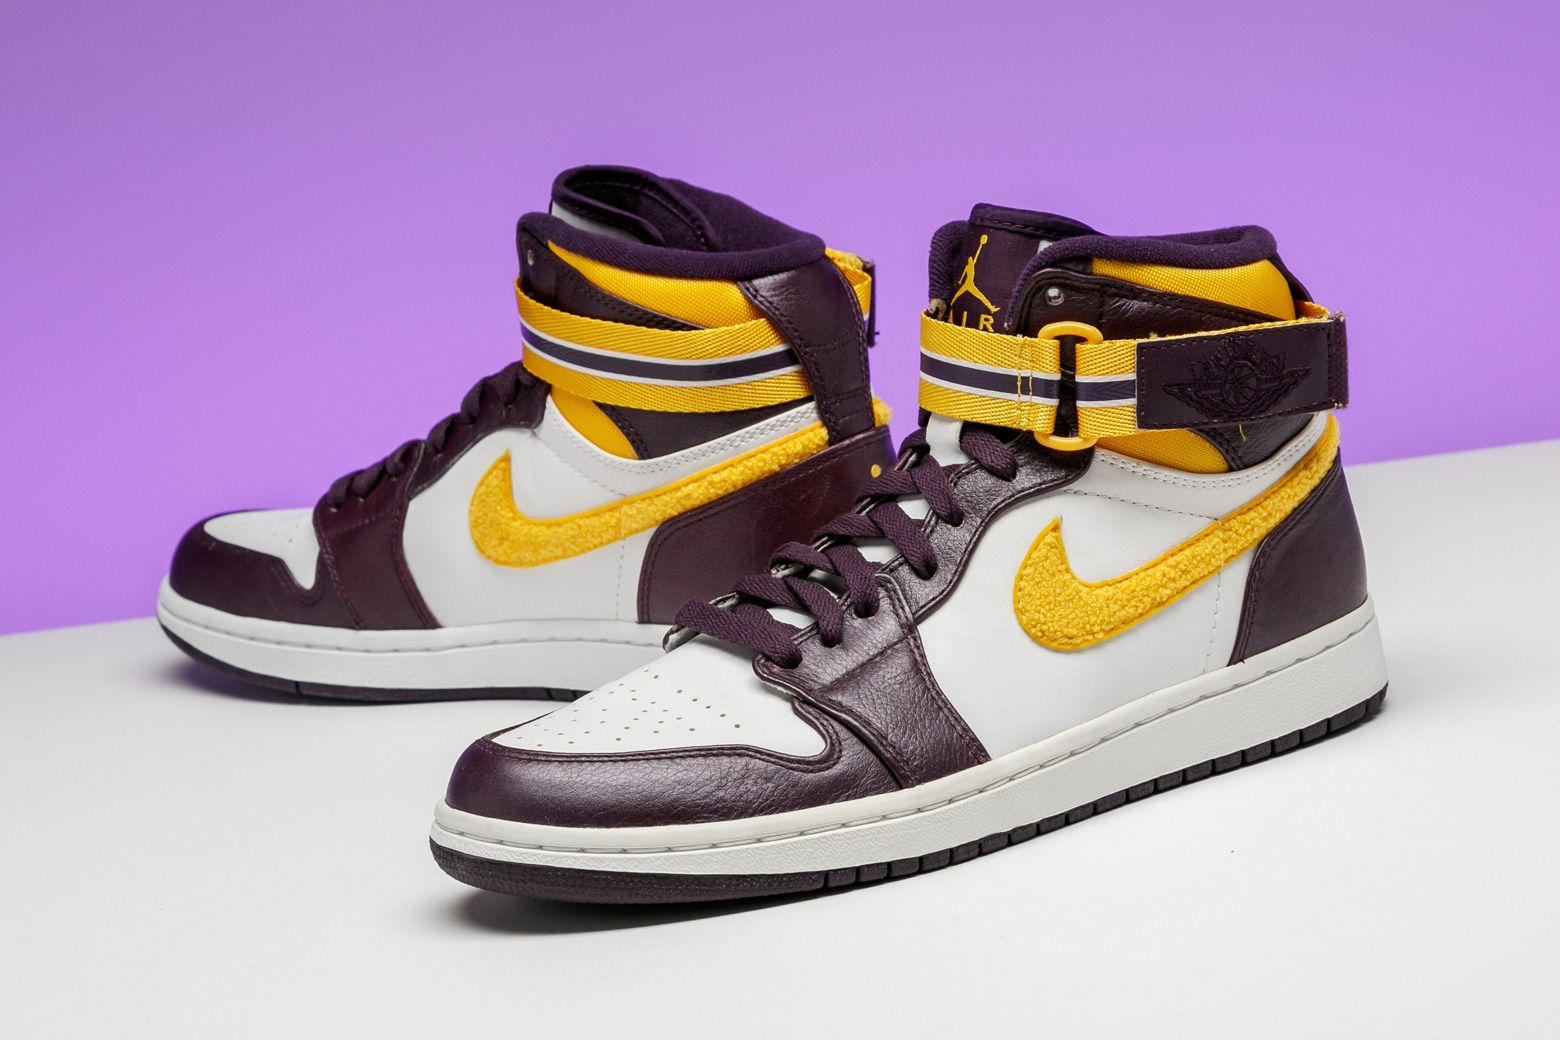 new concept 61863 0616b Jordan Brand coated this 2009 Air Jordan 1 High Strap with a LA Lakers  color scheme.